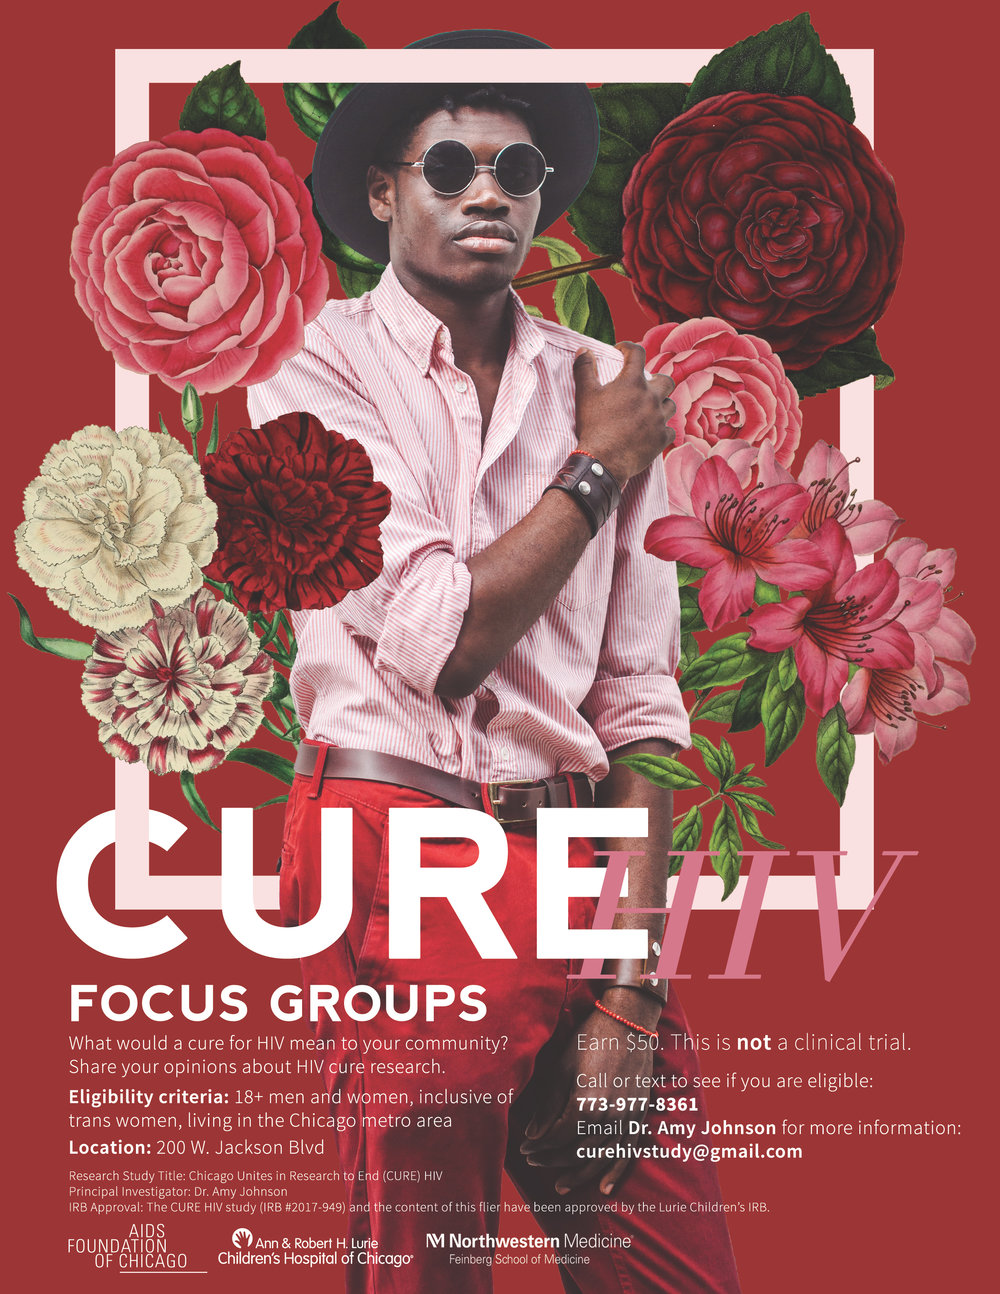 CURE HIV Black Man Ad.jpg